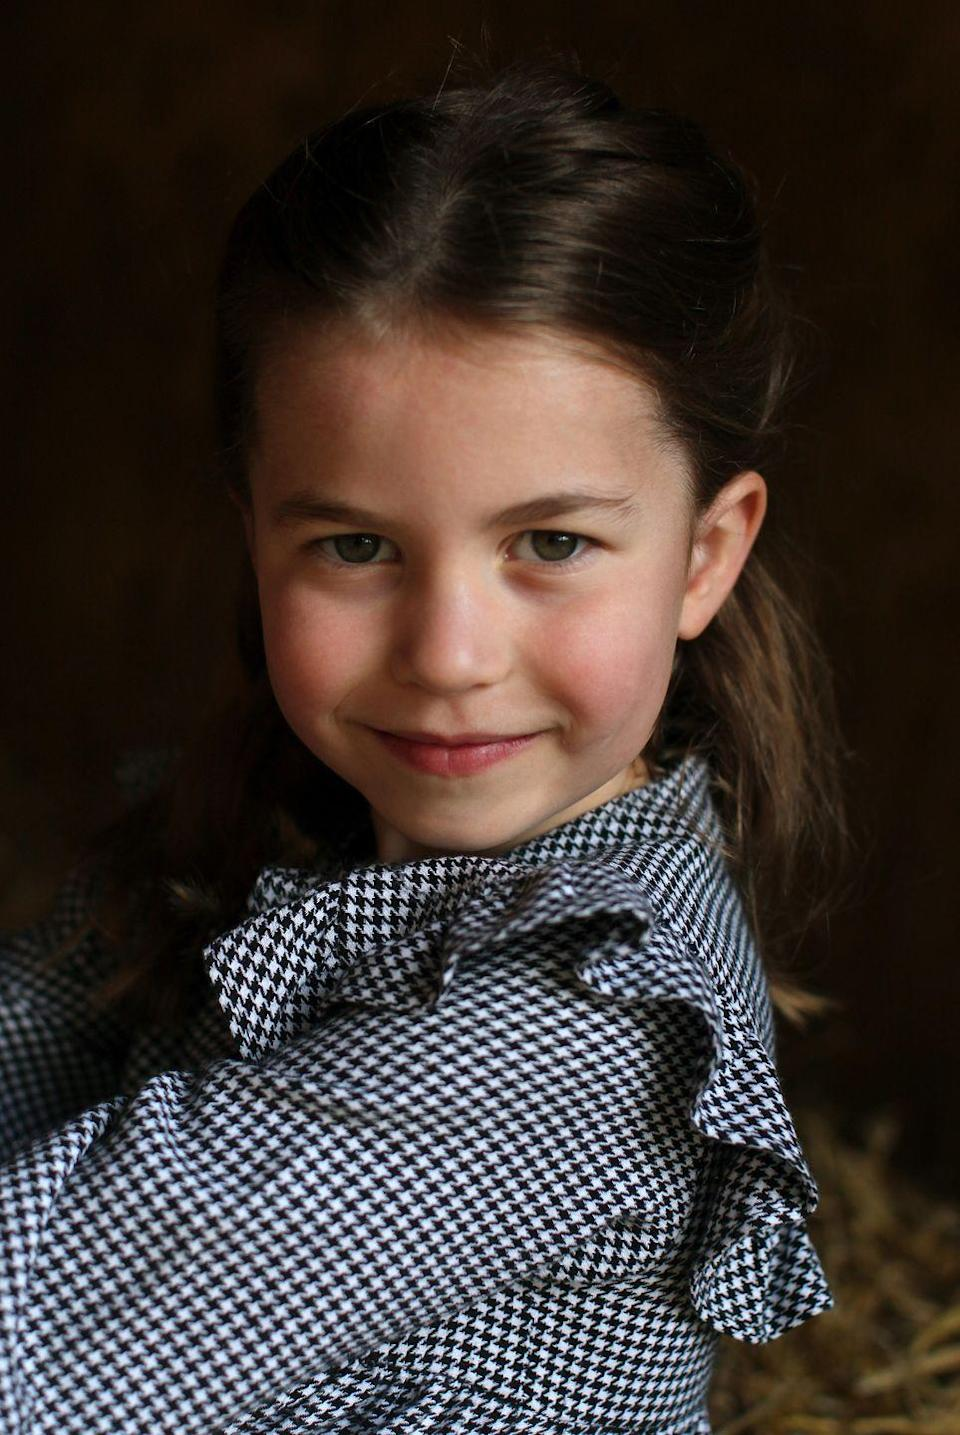 """<p>Captured by her mother, Charlotte wore an adorable gingham dress for a portrait released for her fifth birthday and we can't decide <a href=""""https://www.elle.com/uk/life-and-culture/culture/a32359889/princess-charlotte-birthday-photos/"""" rel=""""nofollow noopener"""" target=""""_blank"""" data-ylk=""""slk:which royal she resembles most."""" class=""""link rapid-noclick-resp"""">which royal she resembles most.</a></p>"""